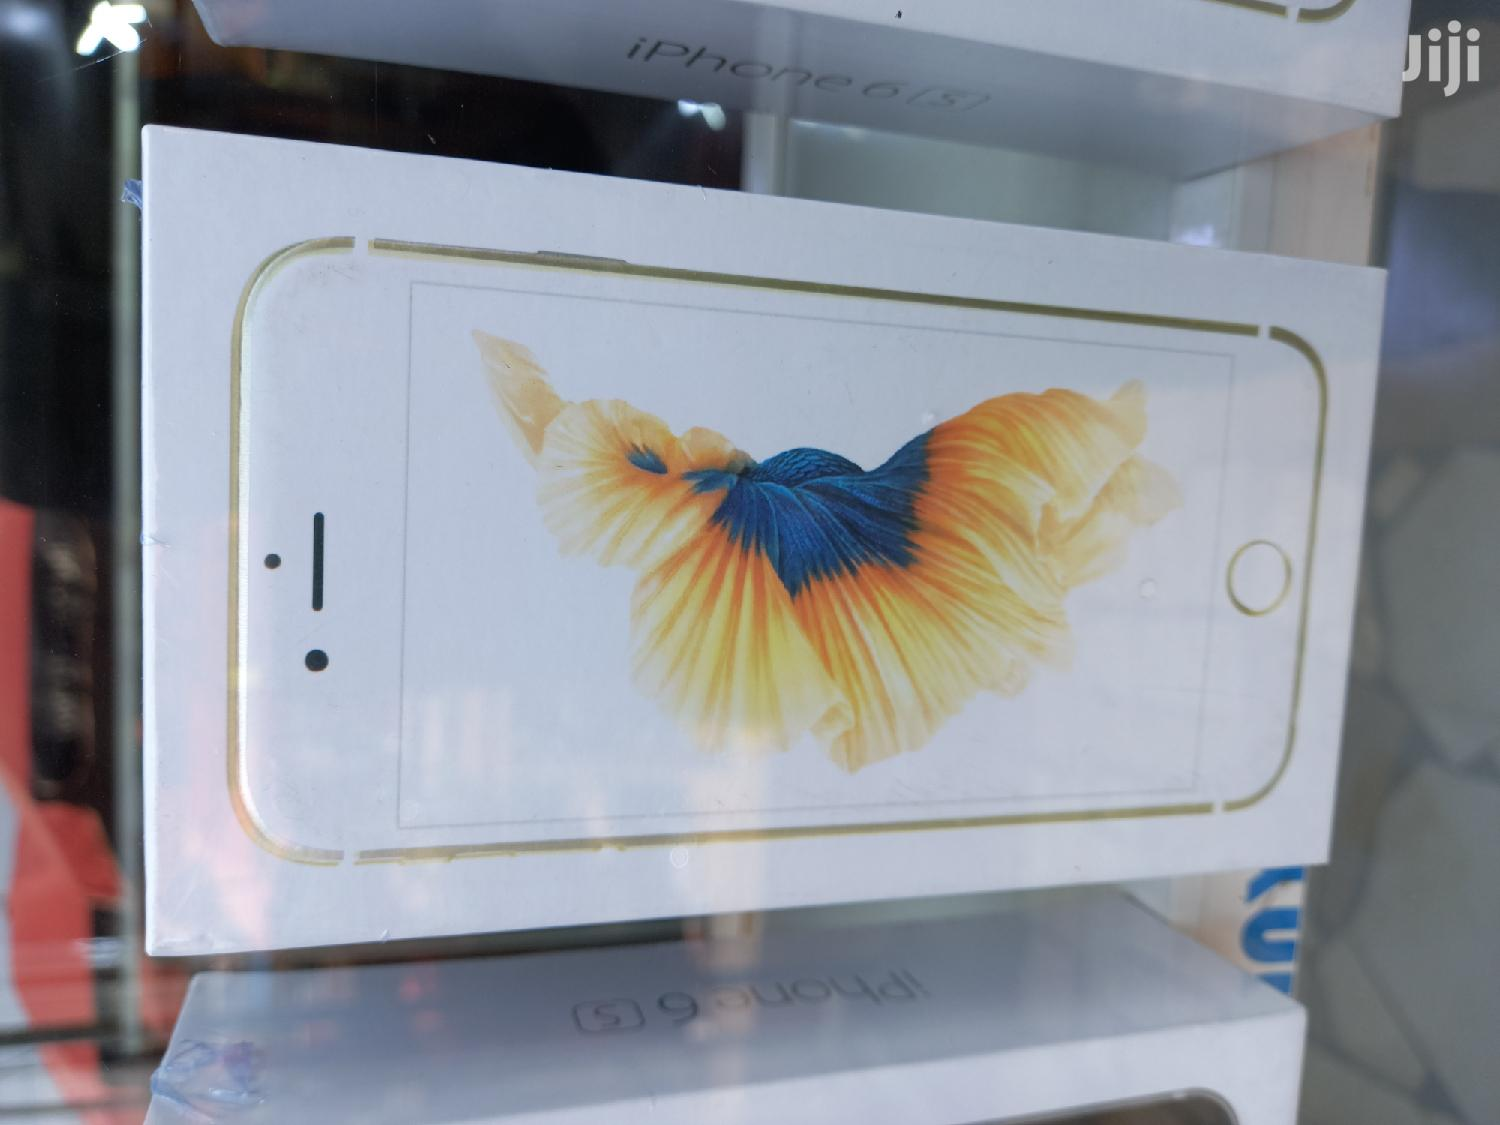 New Apple iPhone 6s 128 GB Black | Mobile Phones for sale in Madina, Greater Accra, Ghana